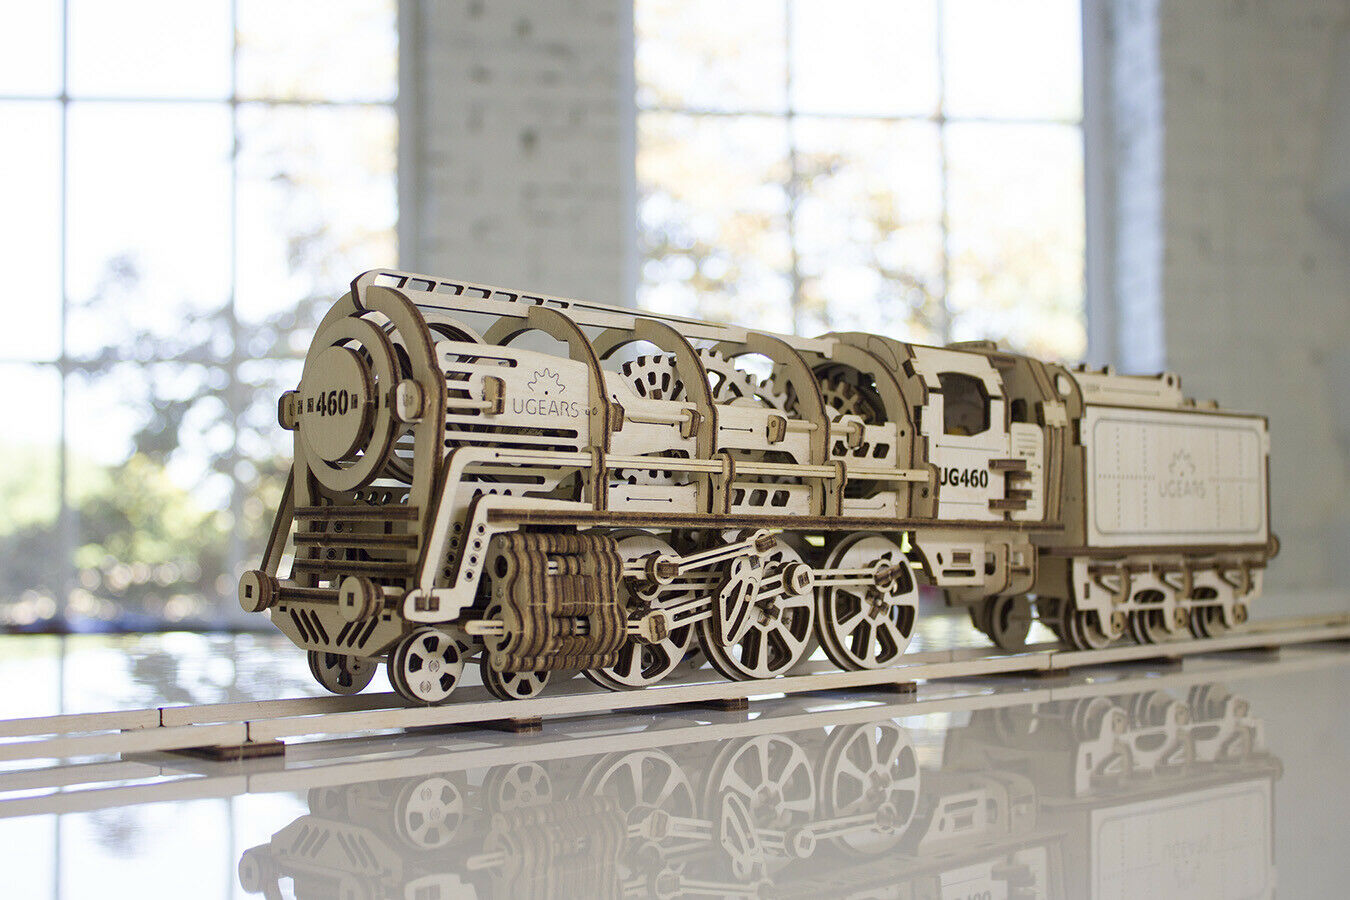 UGEARS 460 STEAM LOCOMOTIVE with TENDER Self-Propelled Wooden Model 3D Puzzle